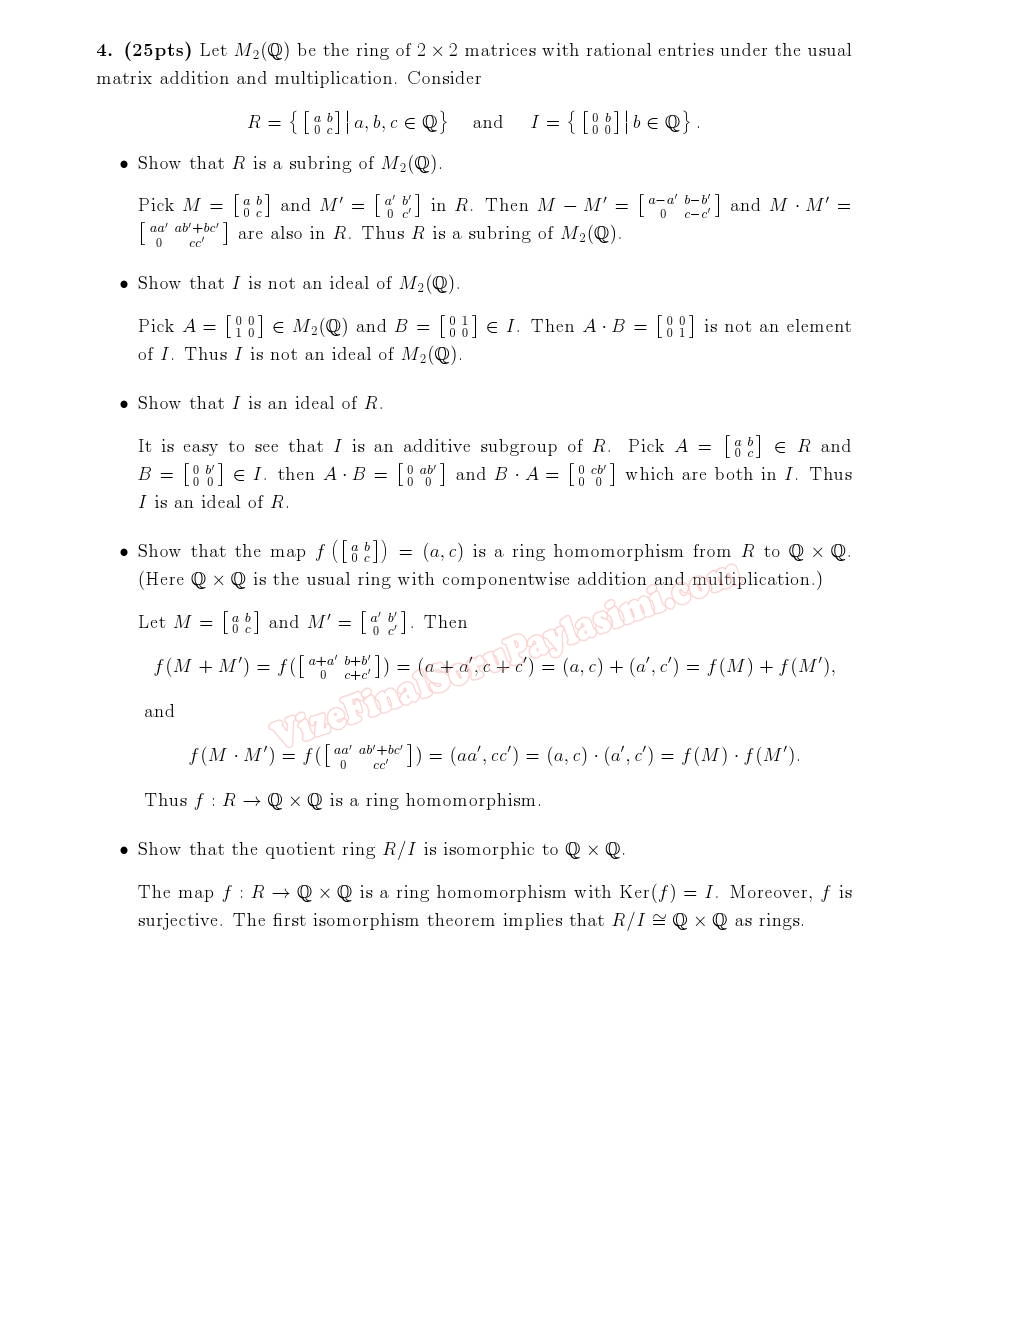 midterm exam questions 2015 It is possible to measure more complex thinking with multiple choice questions,  but it requires a high level of effort and skill on the teacher's part.